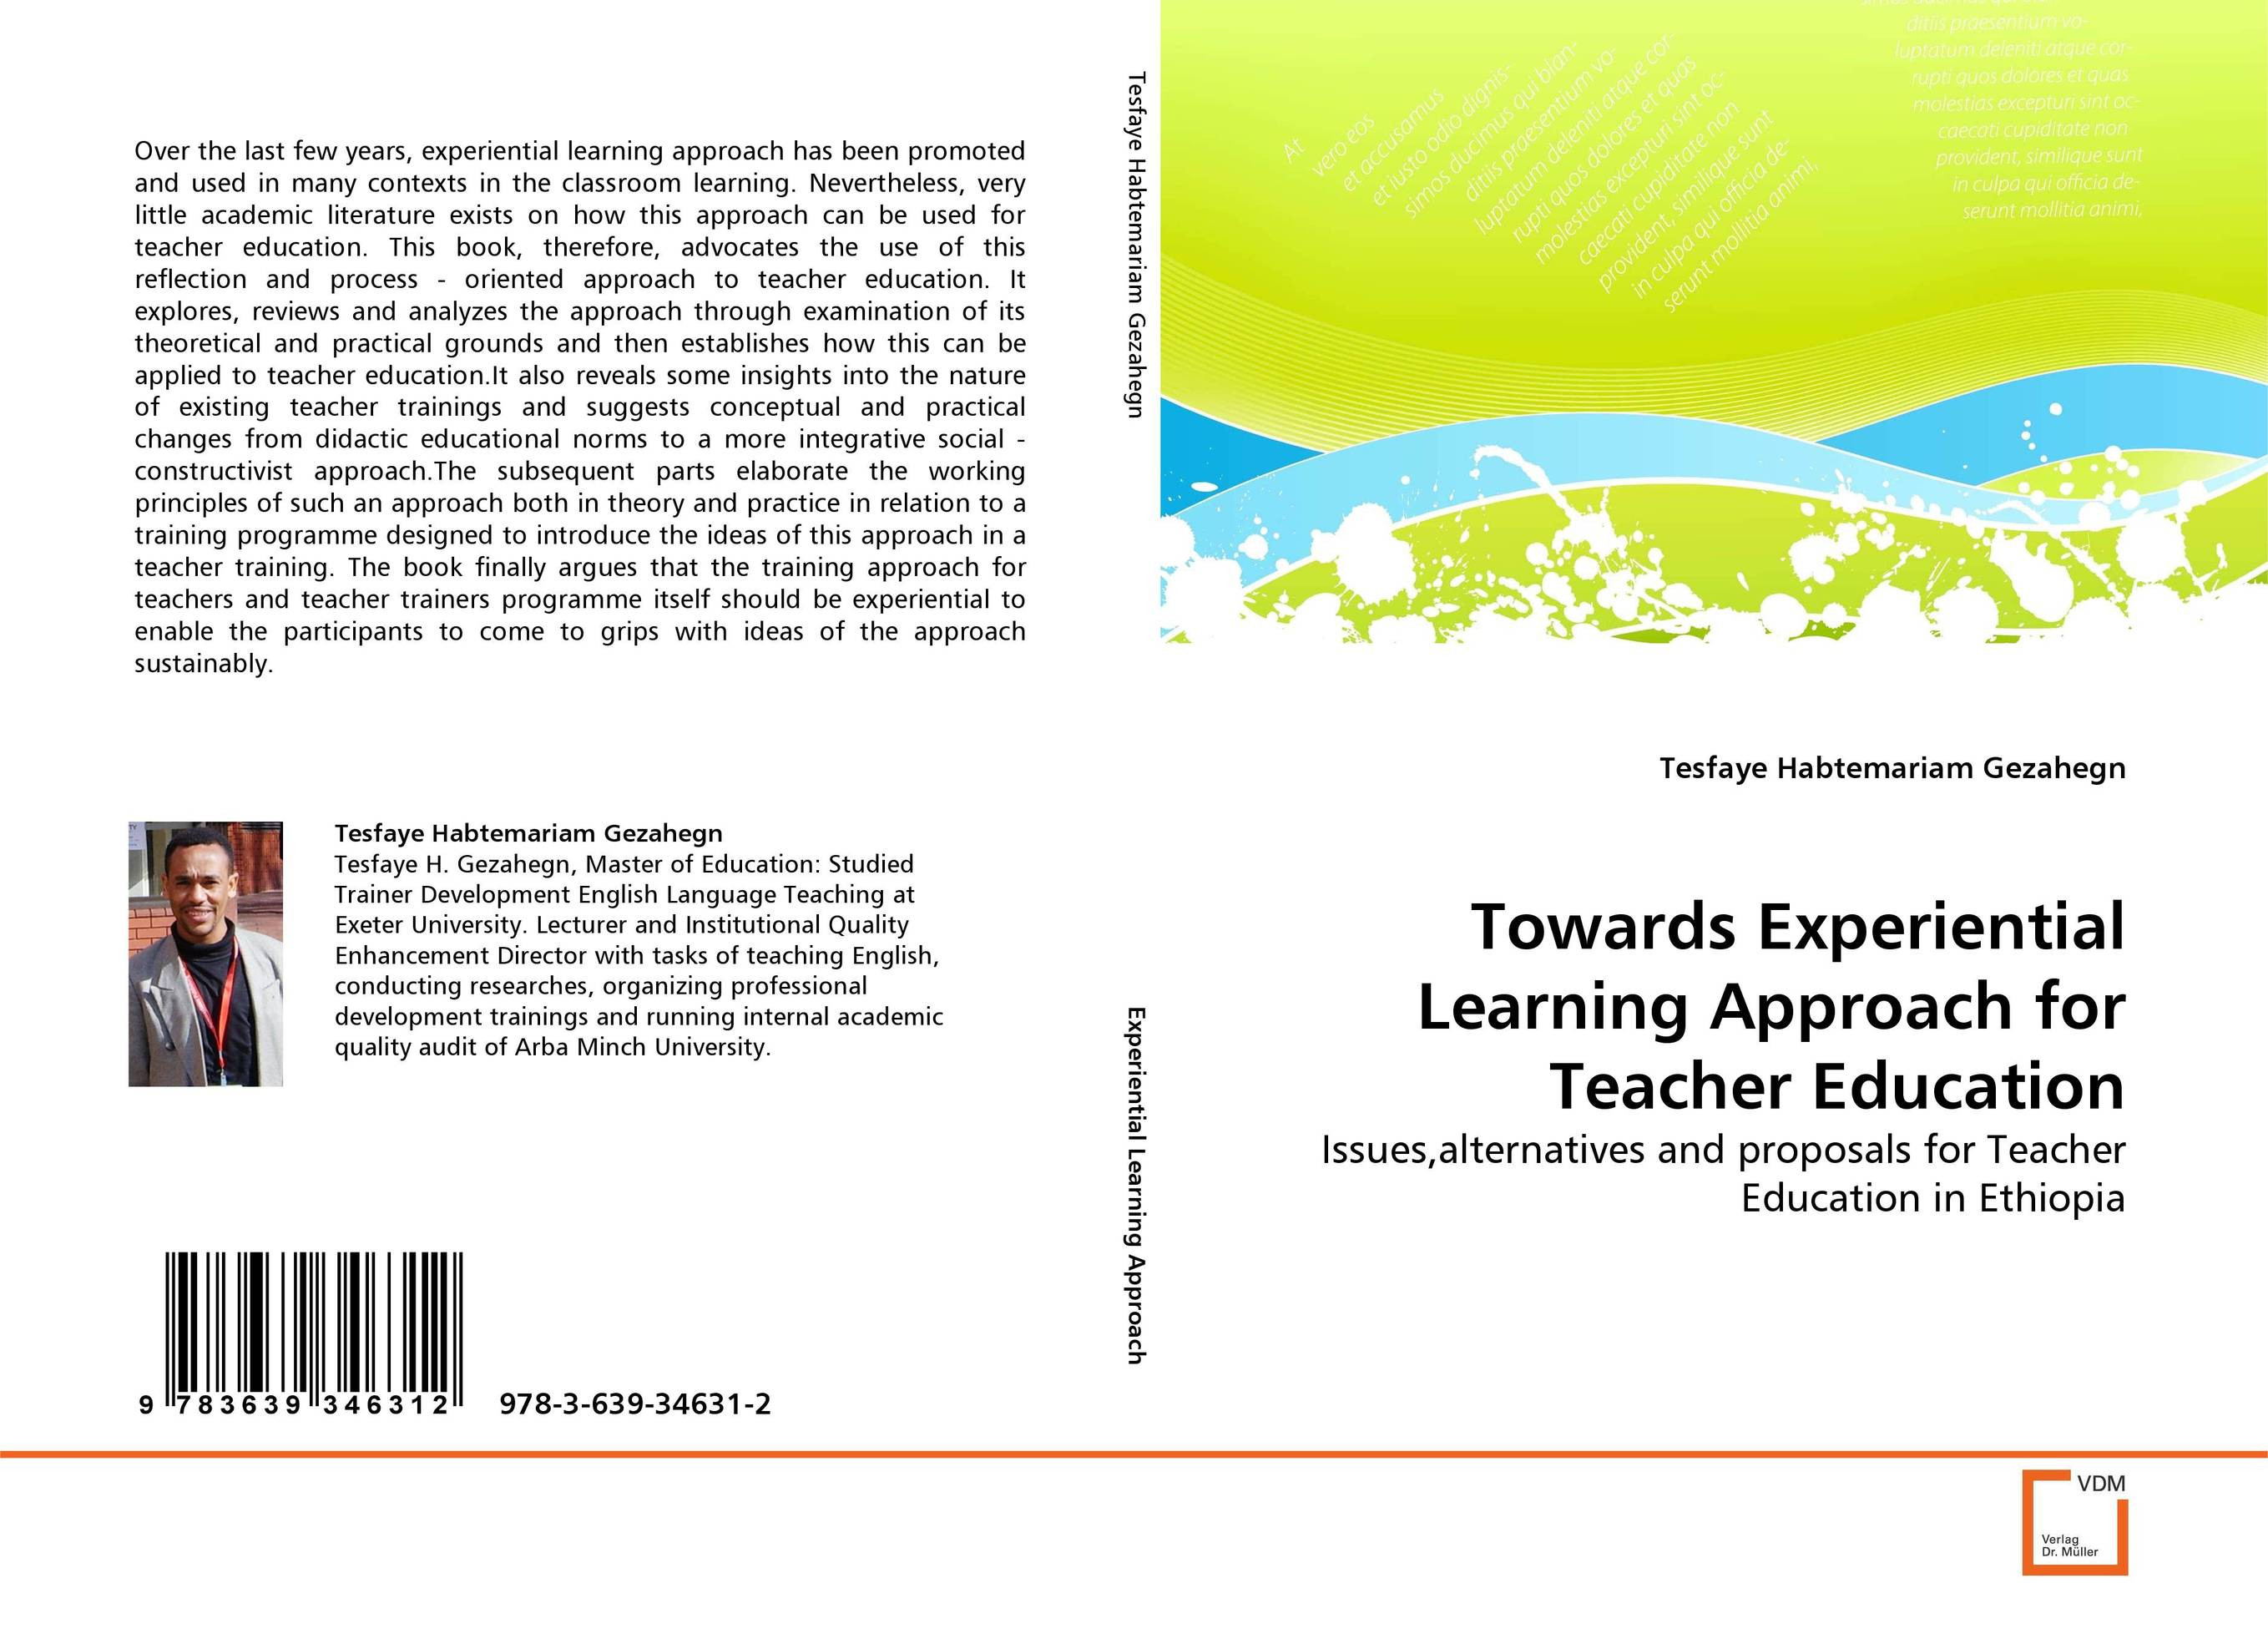 Towards Experiential Learning Approach for Teacher Education peter stone layered learning in multiagent systems – a winning approach to robotic soccer